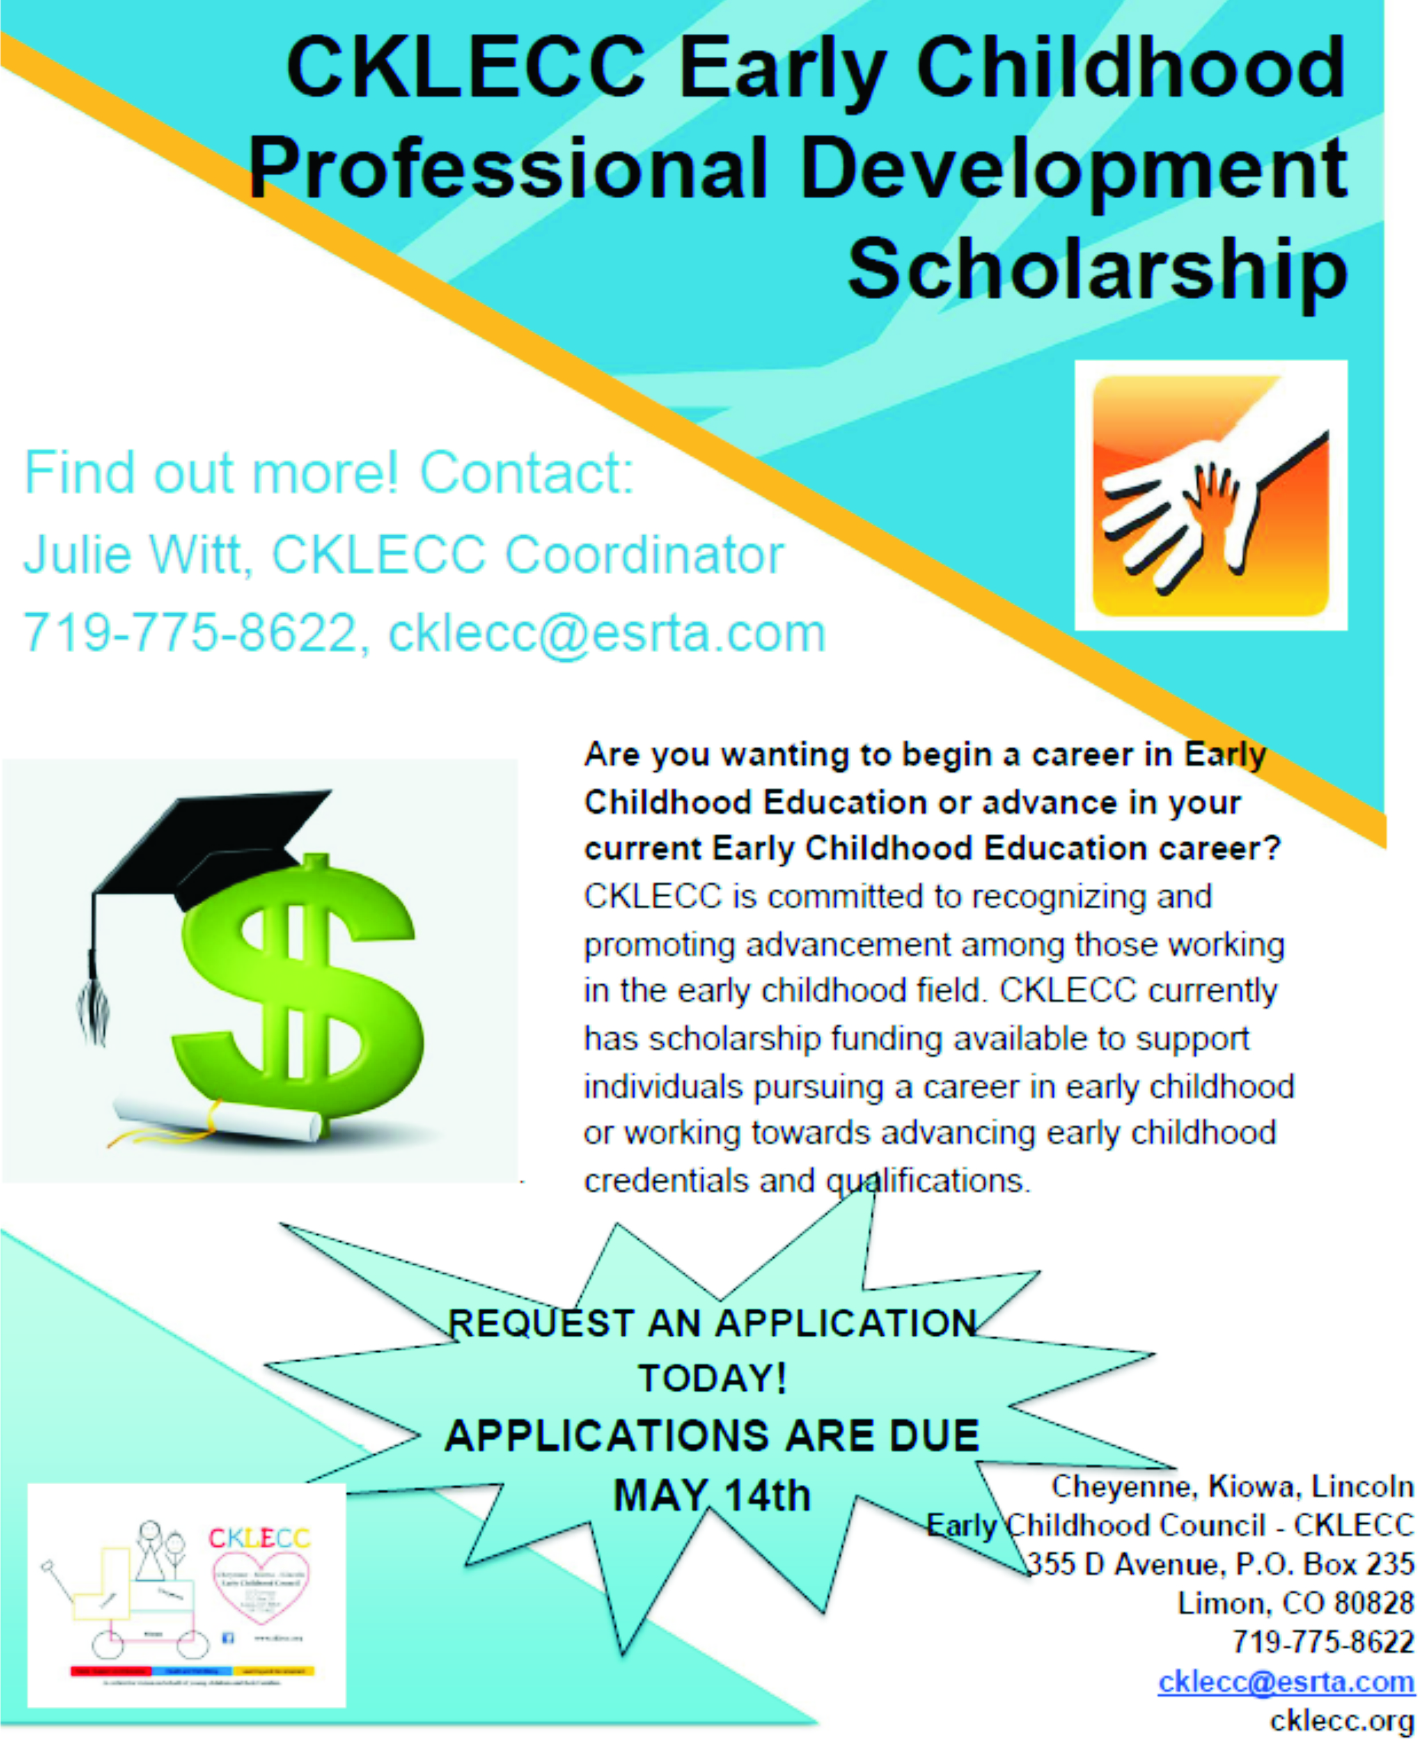 AD 2021-04 Education Early Childhood Professional Development Scholarship